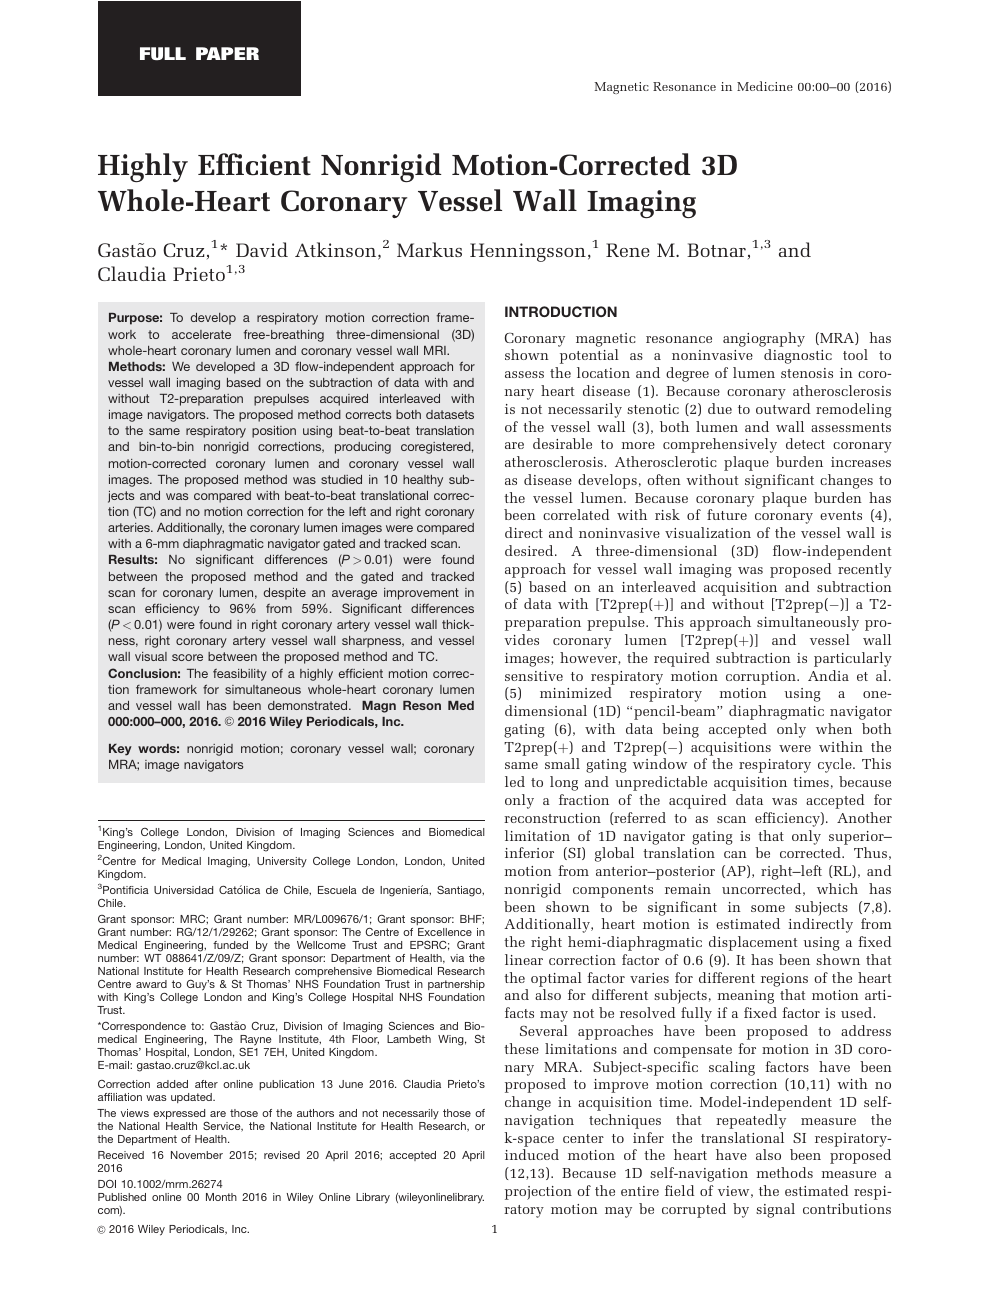 Highly efficient nonrigid motion-corrected 3D whole-heart